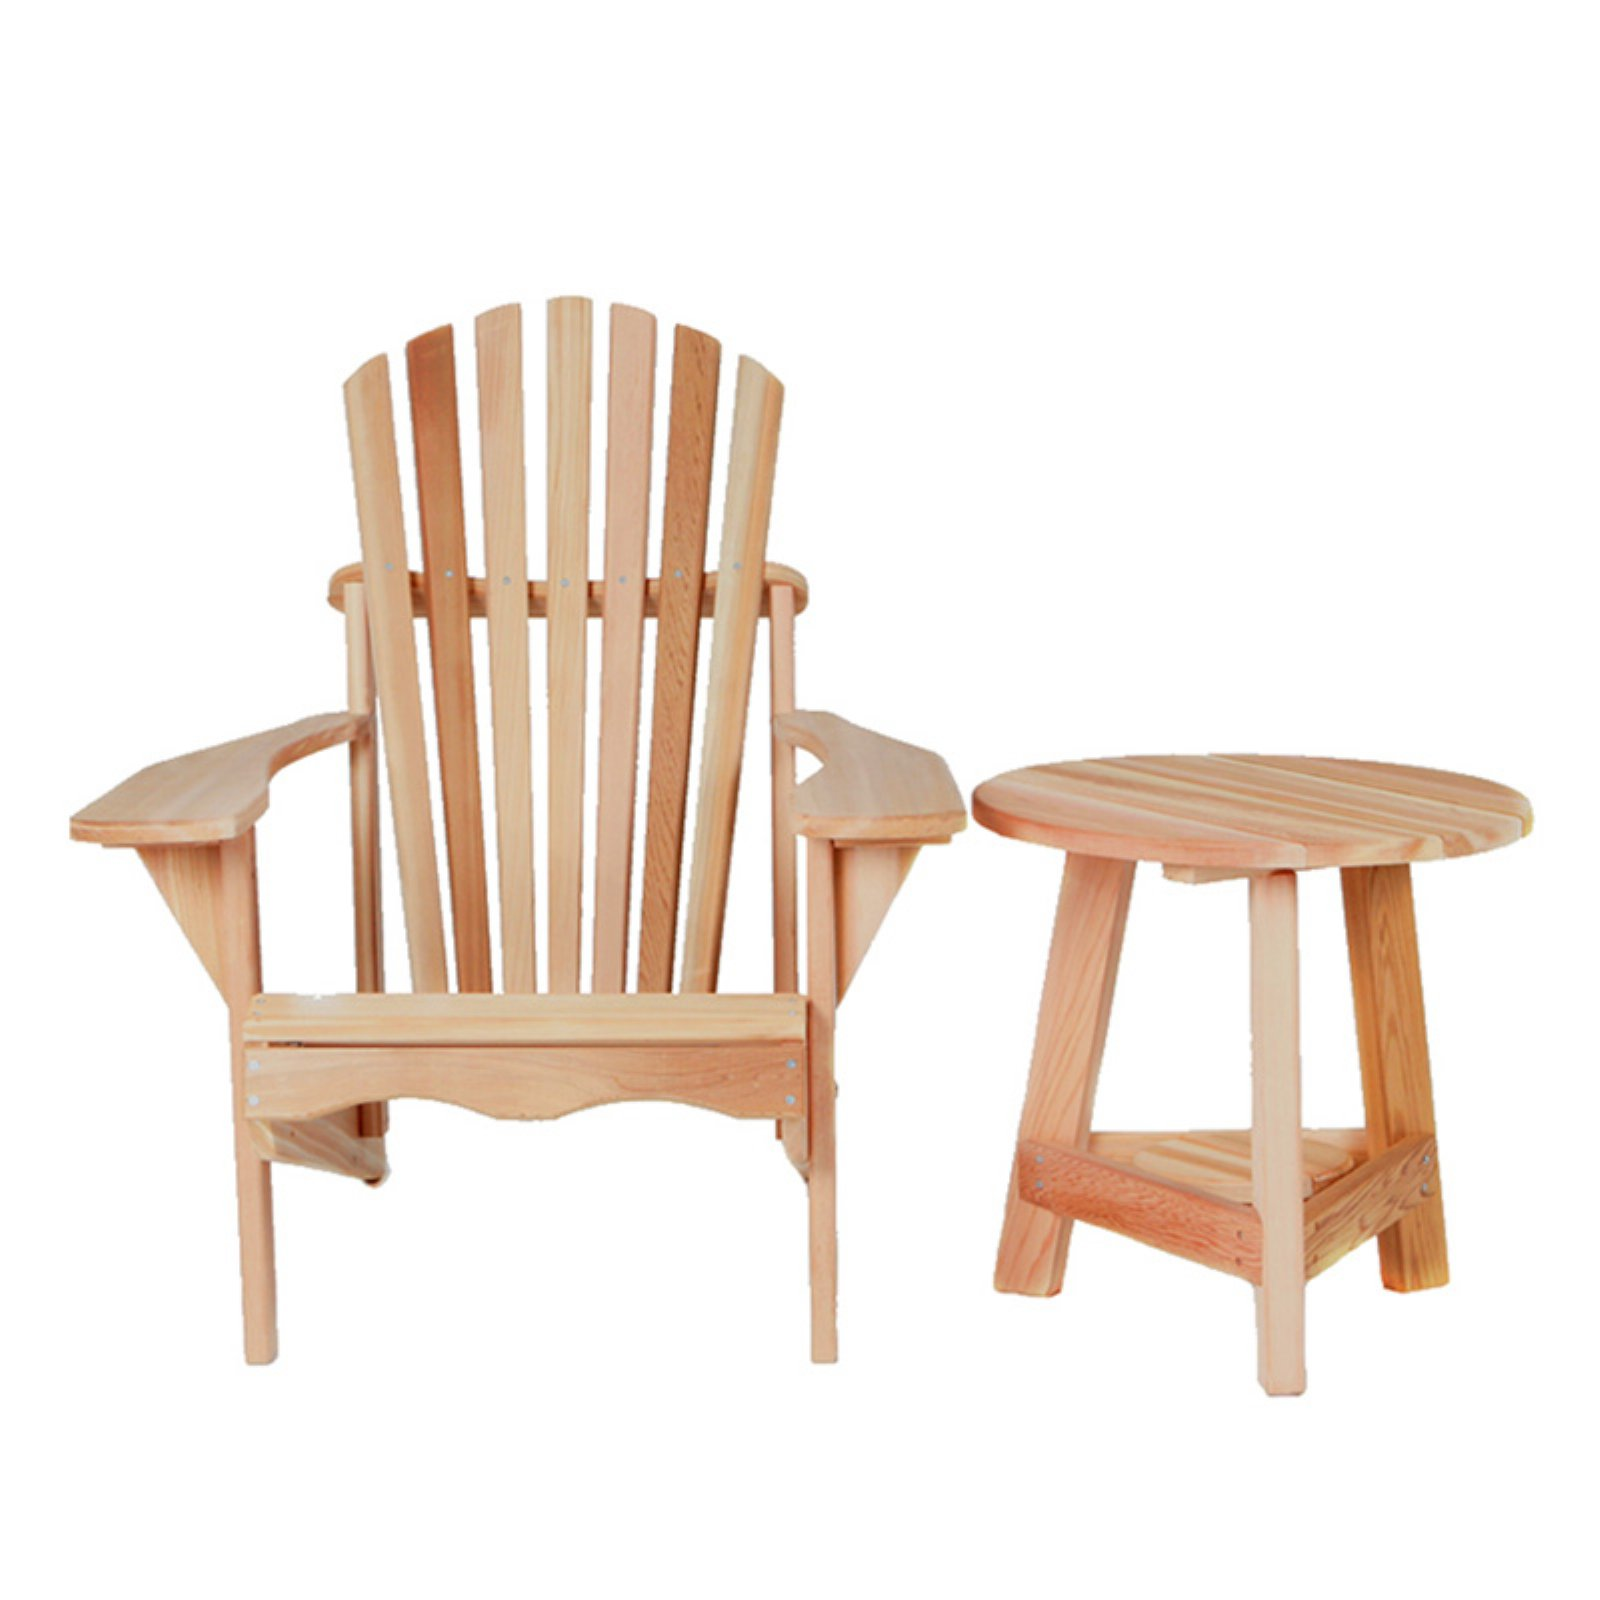 All Things Cedar Adirondack Chair with Tripod Table 2 pc. Set - Western Red Cedar